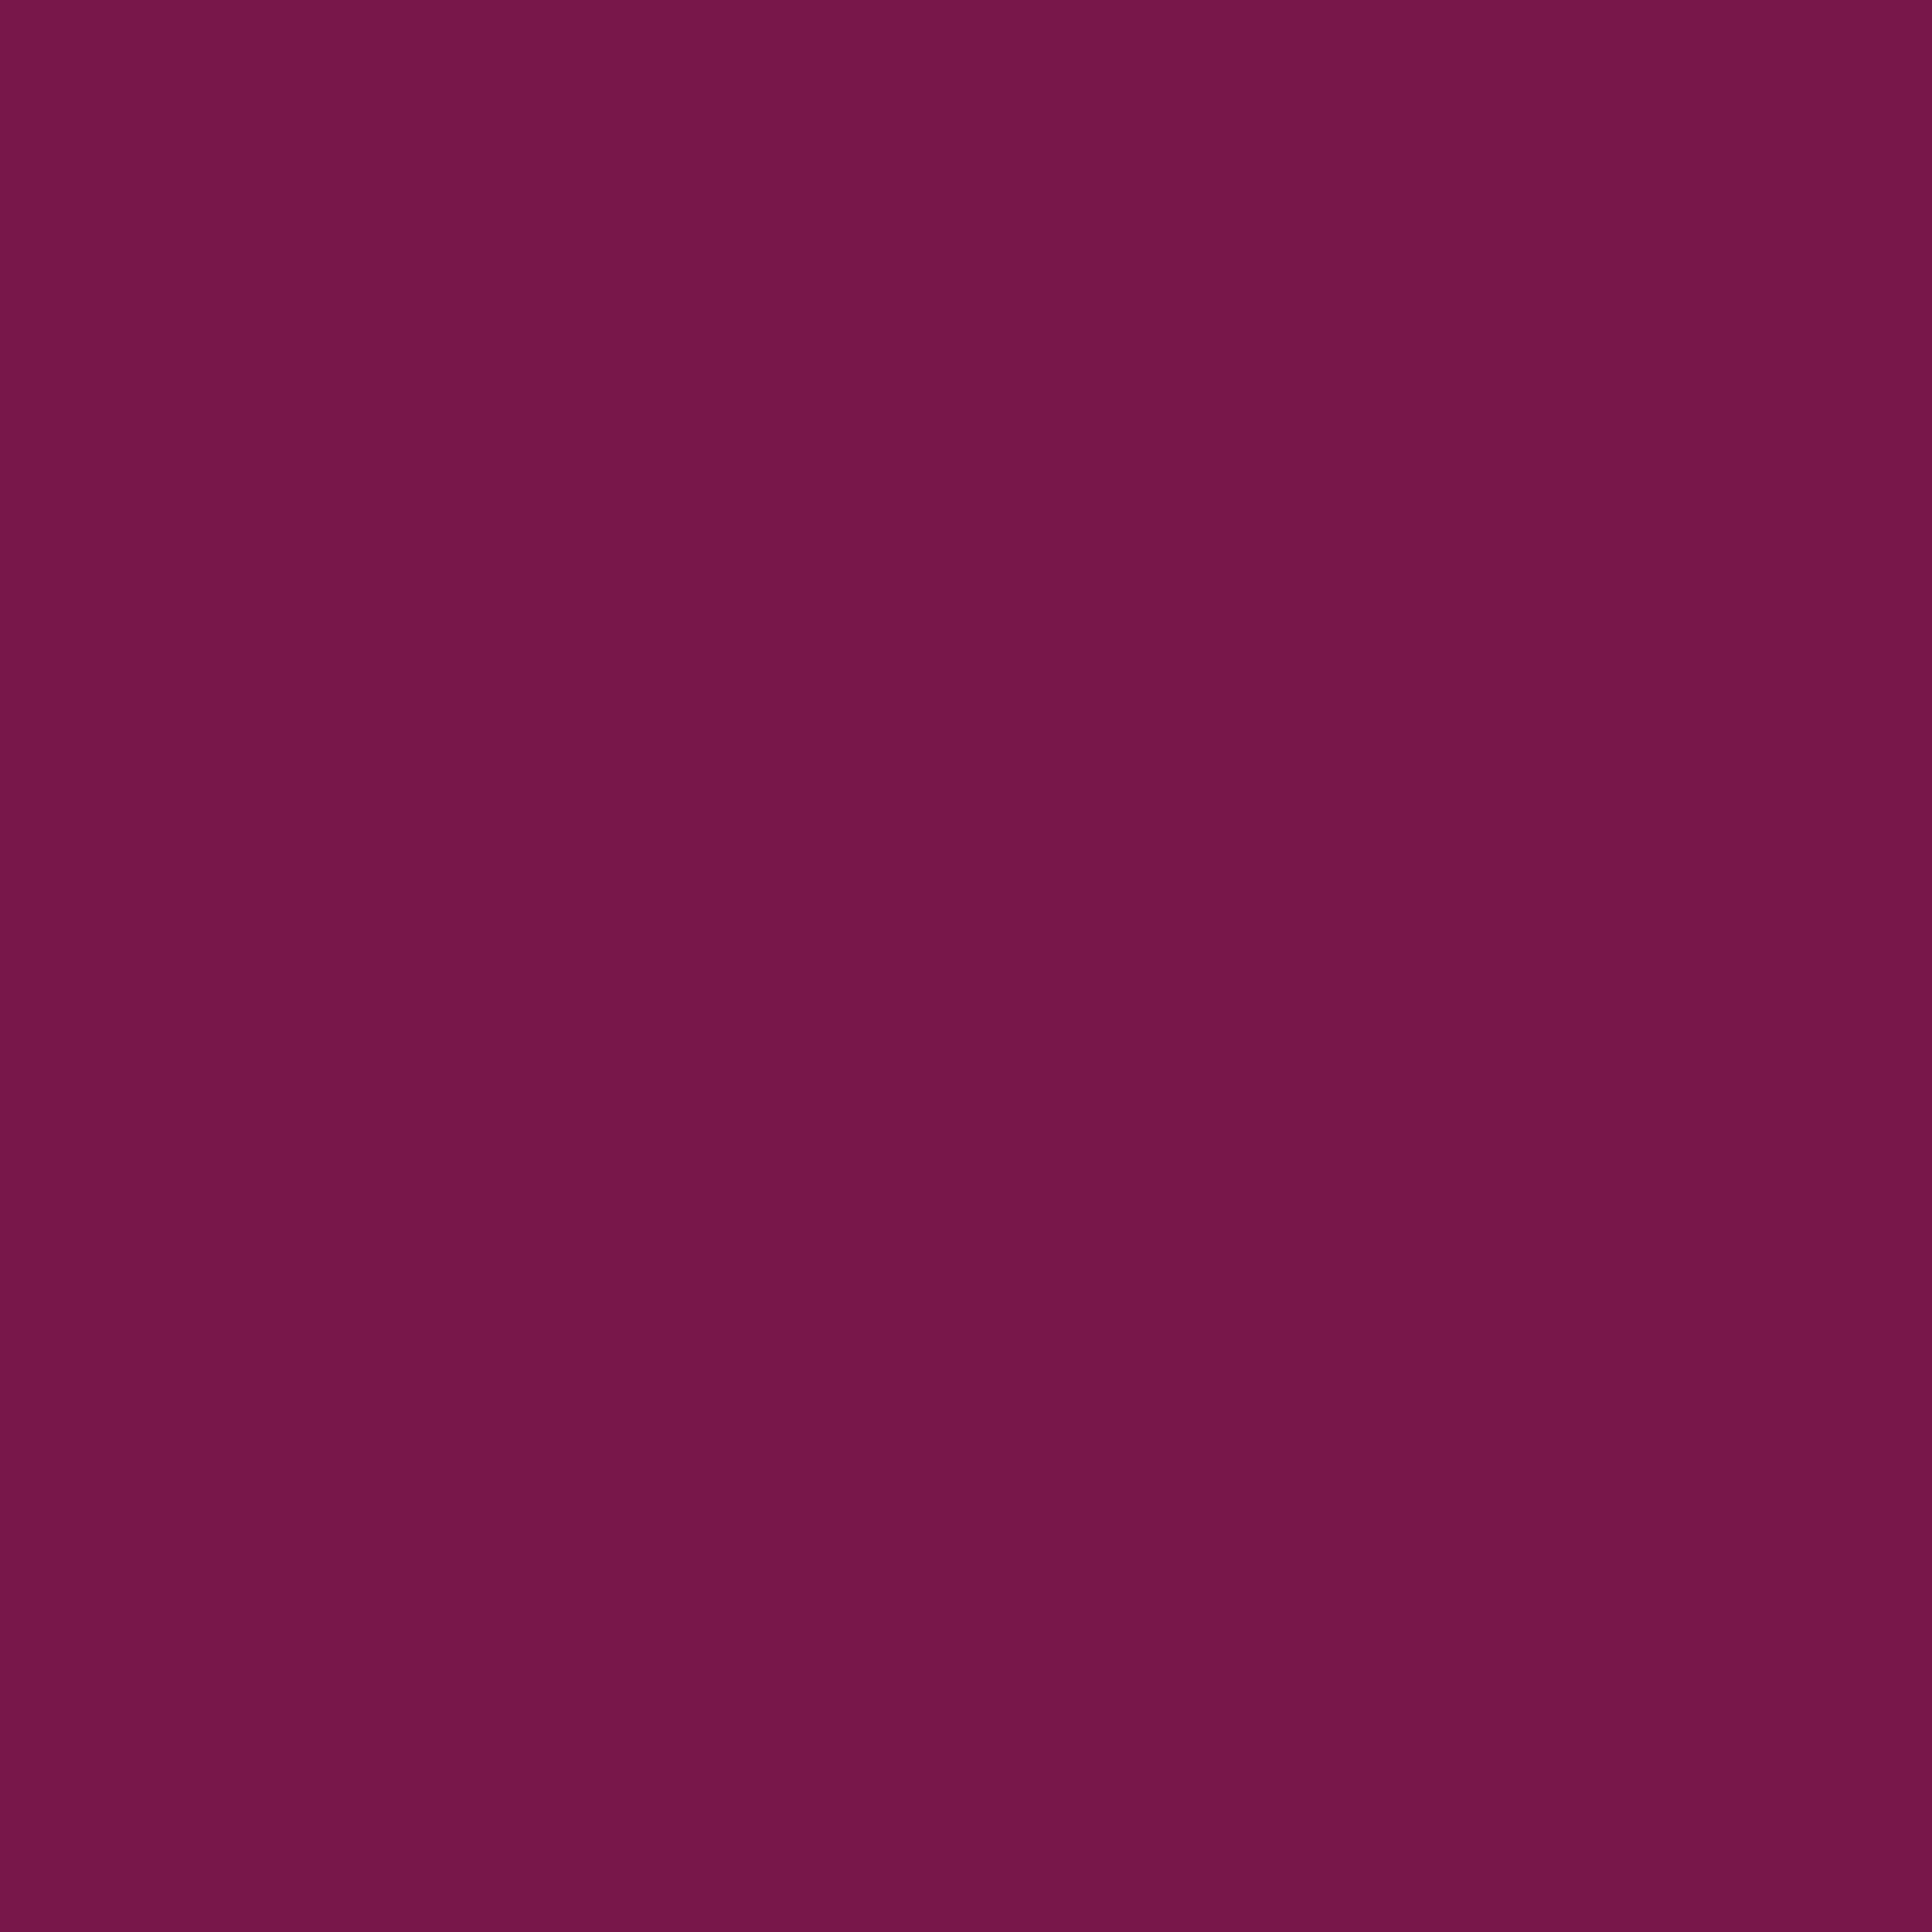 3600x3600 Pansy Purple Solid Color Background